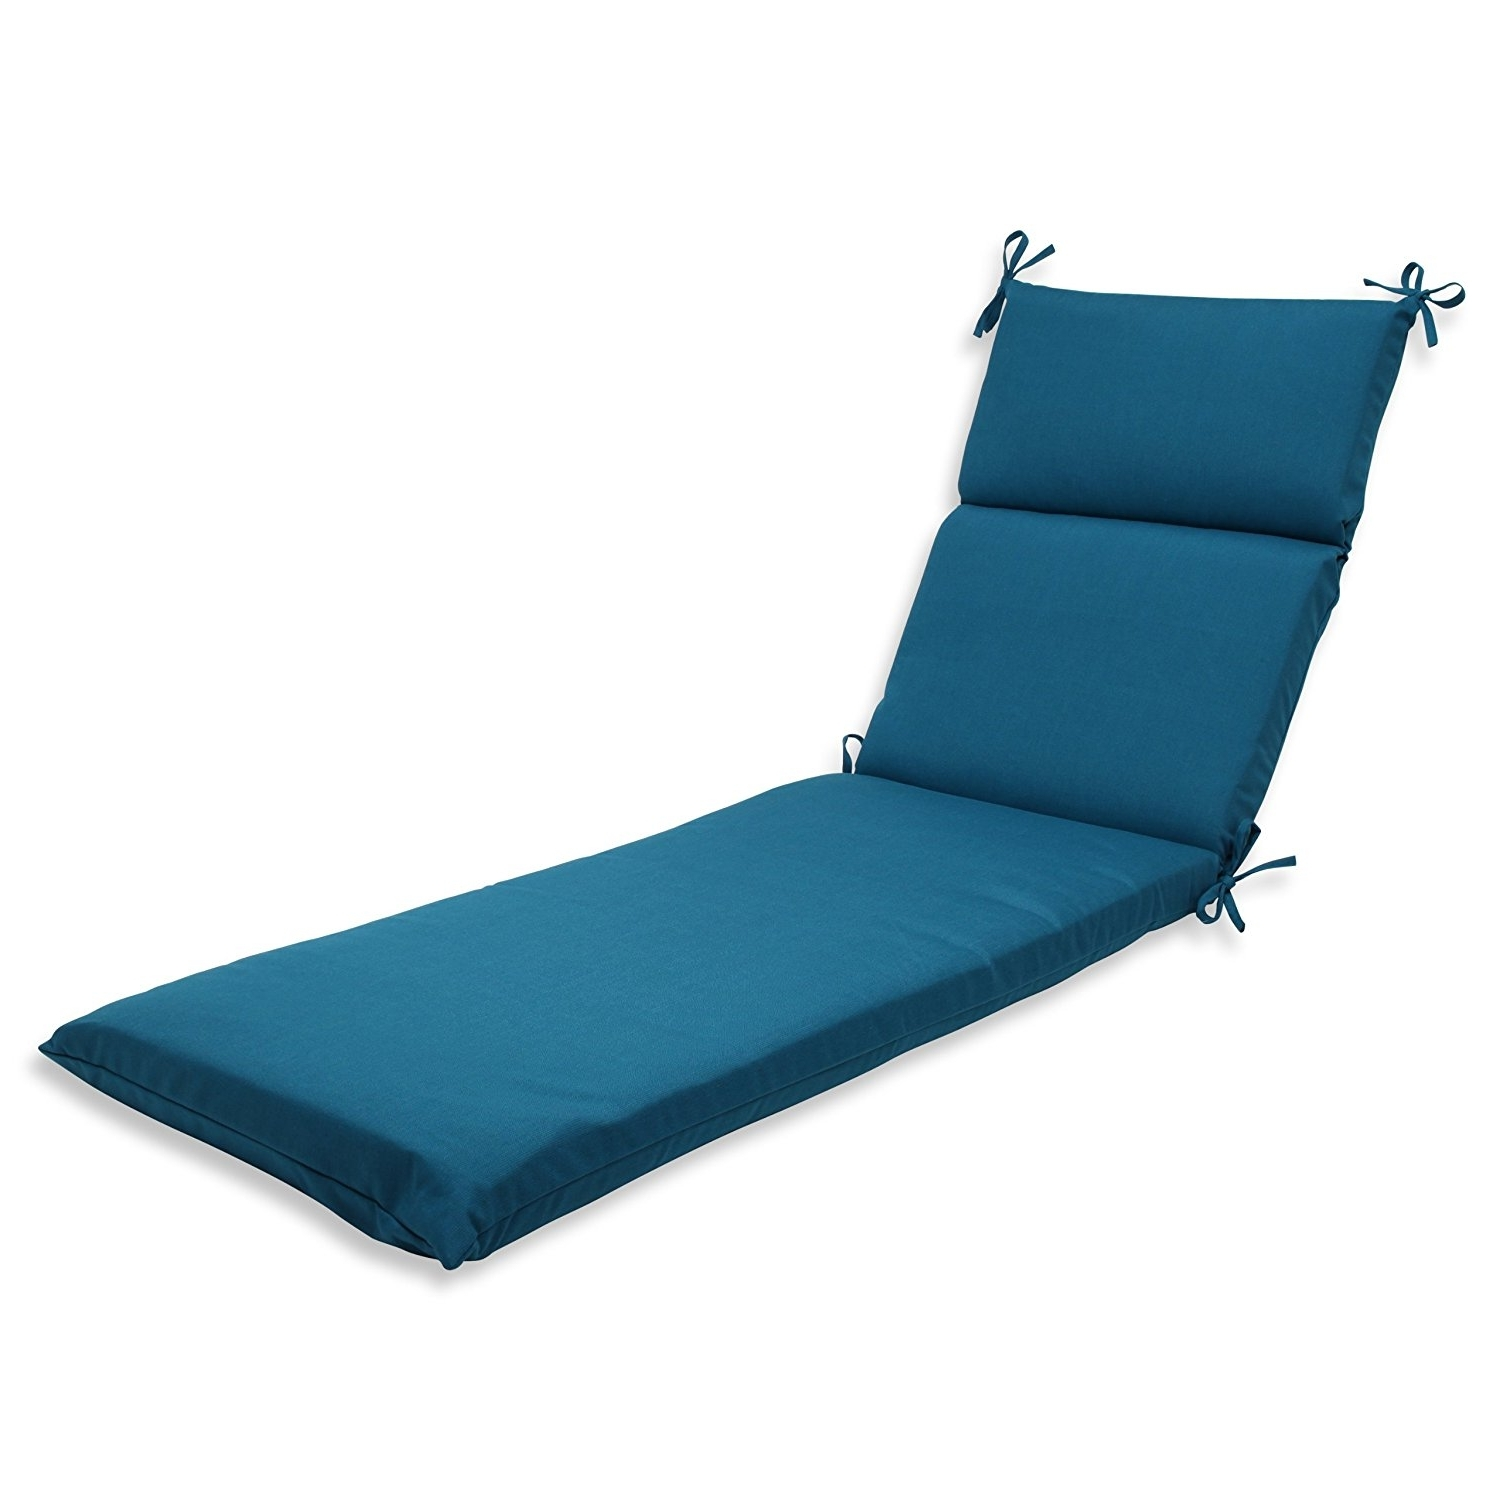 Favorite Chaise Cushions Pertaining To Amazon: Pillow Perfect Chaise Lounge Cushion With Sunbrella (View 7 of 15)